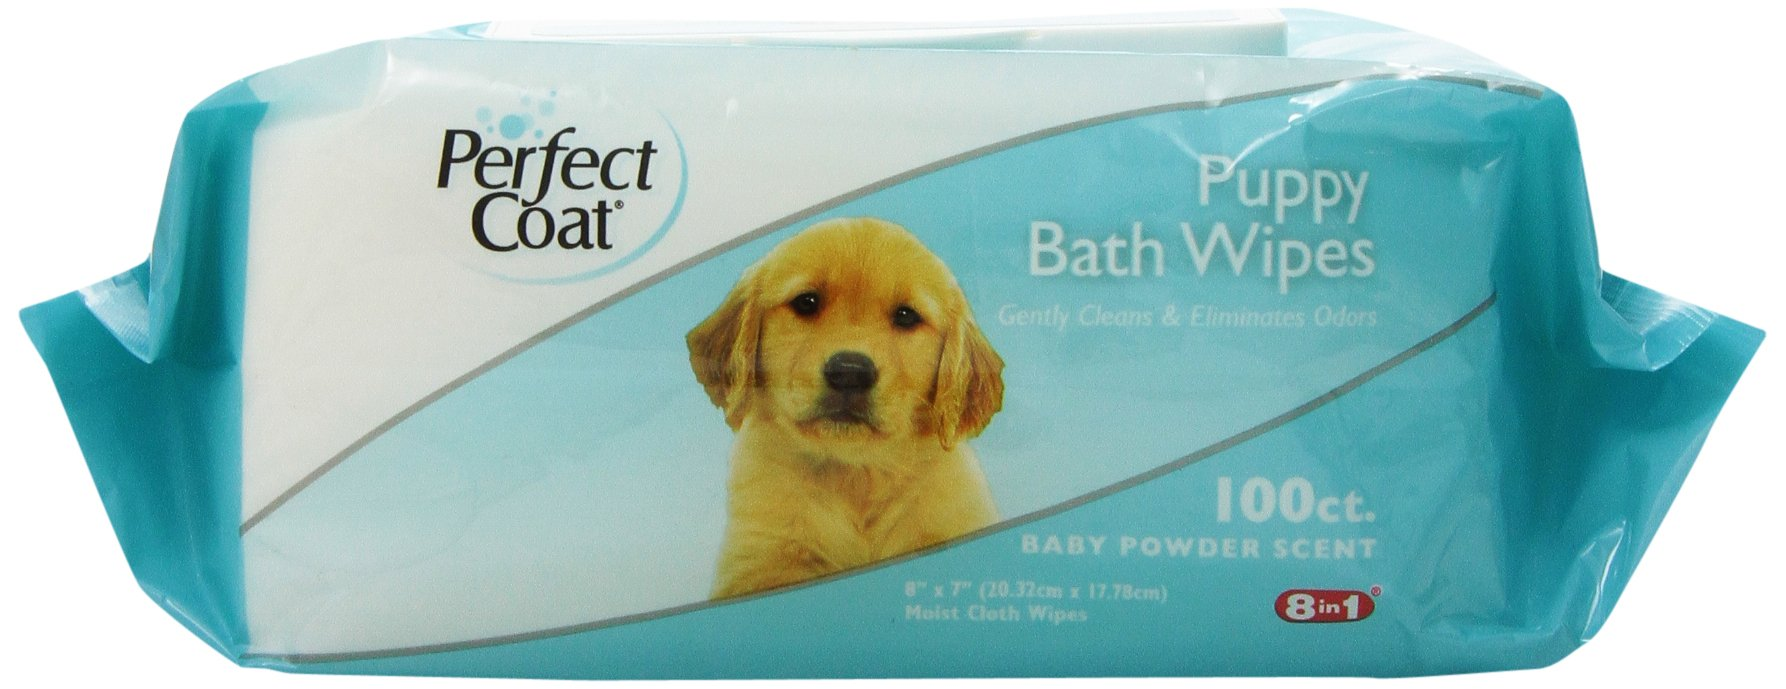 8in1 Perfect Coat Bath Wipes, Puppy, 100-Count